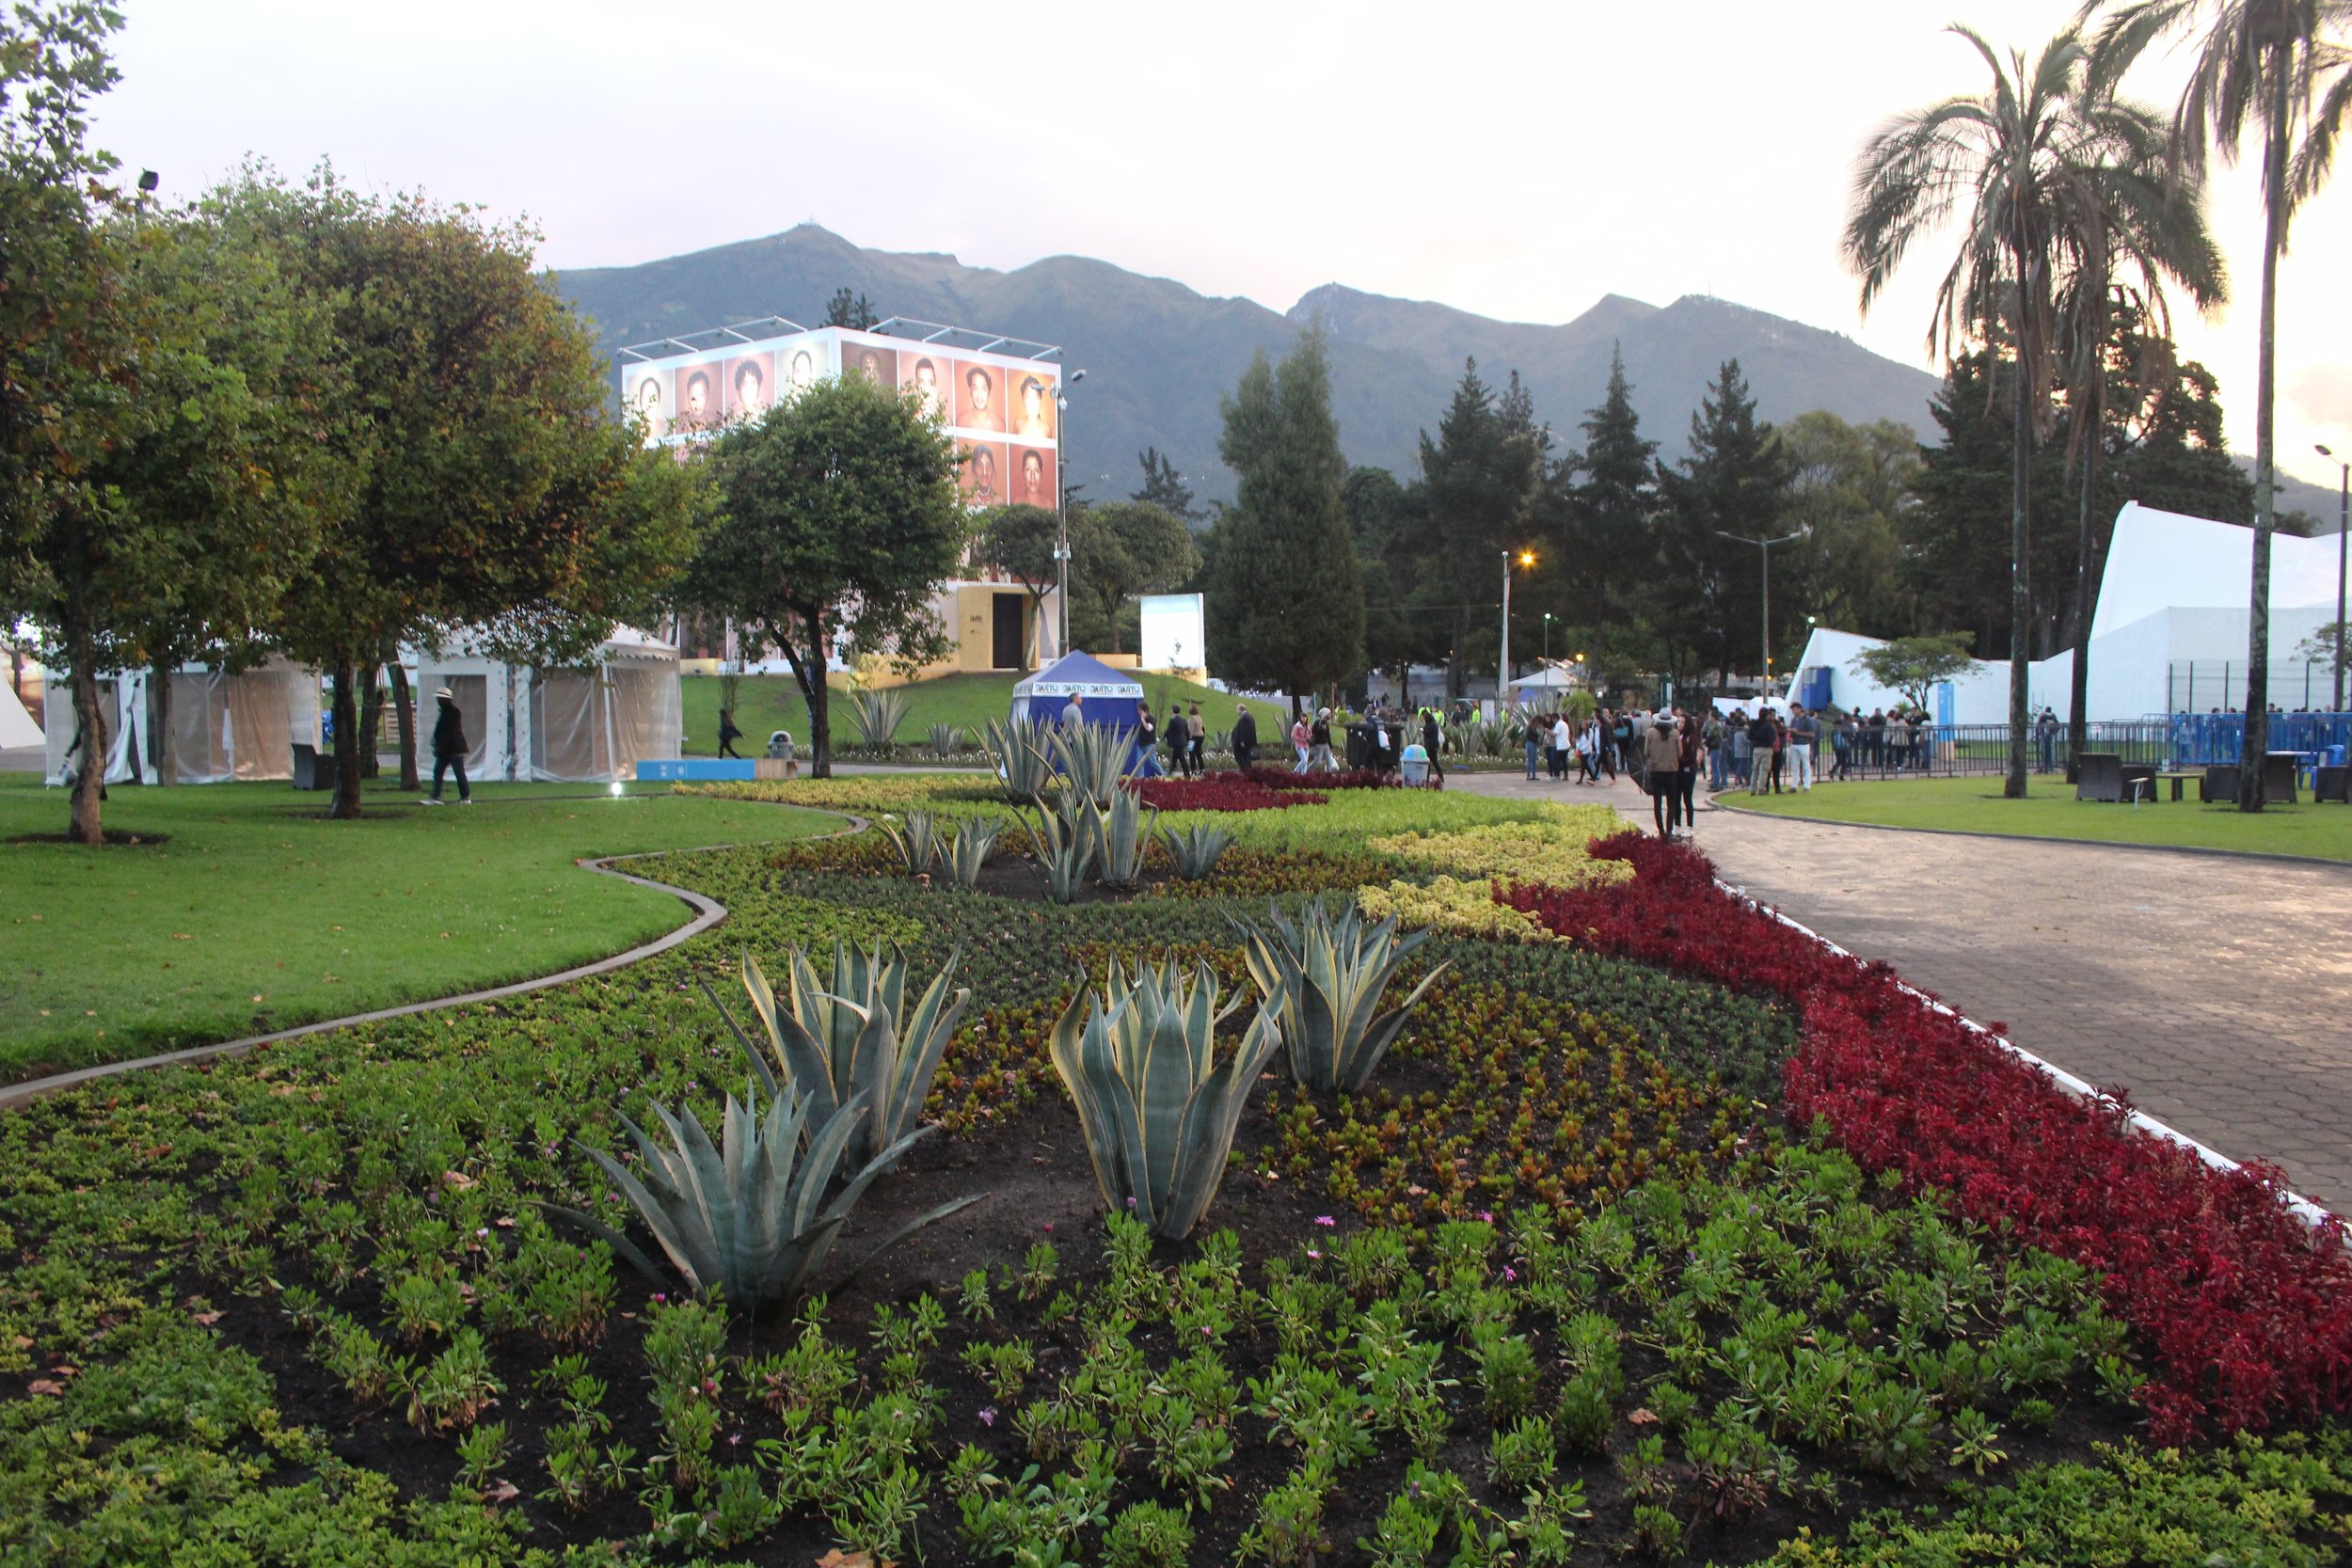 The Habitat 'Village' set up as part of the Habitat III conference.